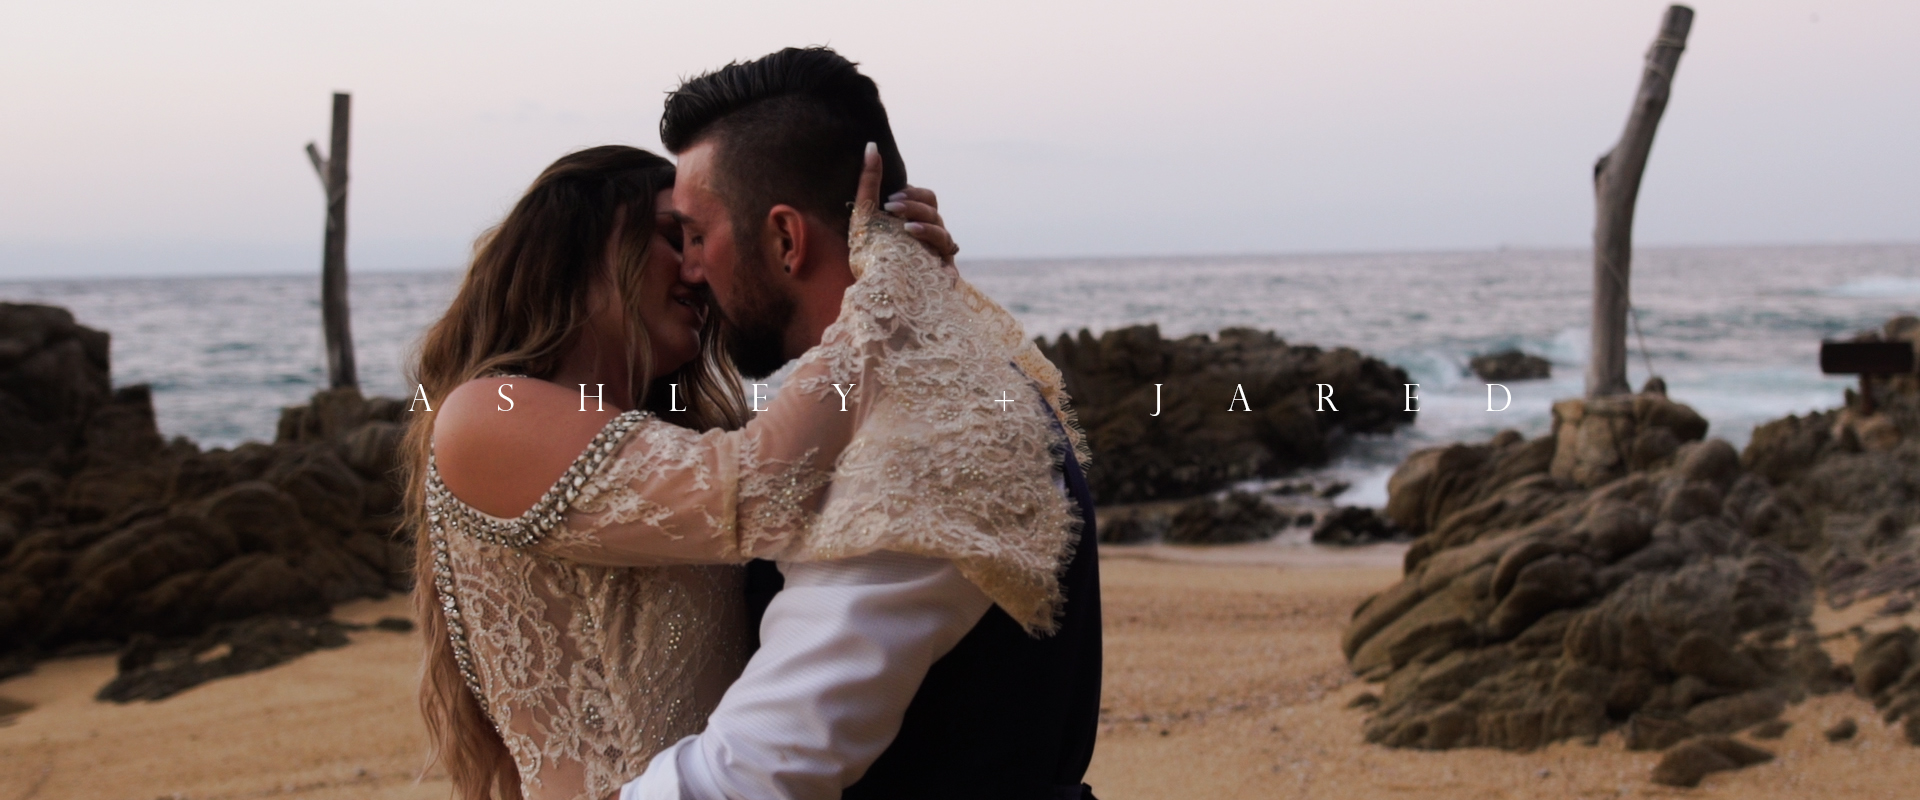 Ashley + Jared | Puerto Vallarta, Mexico | Las Caletas